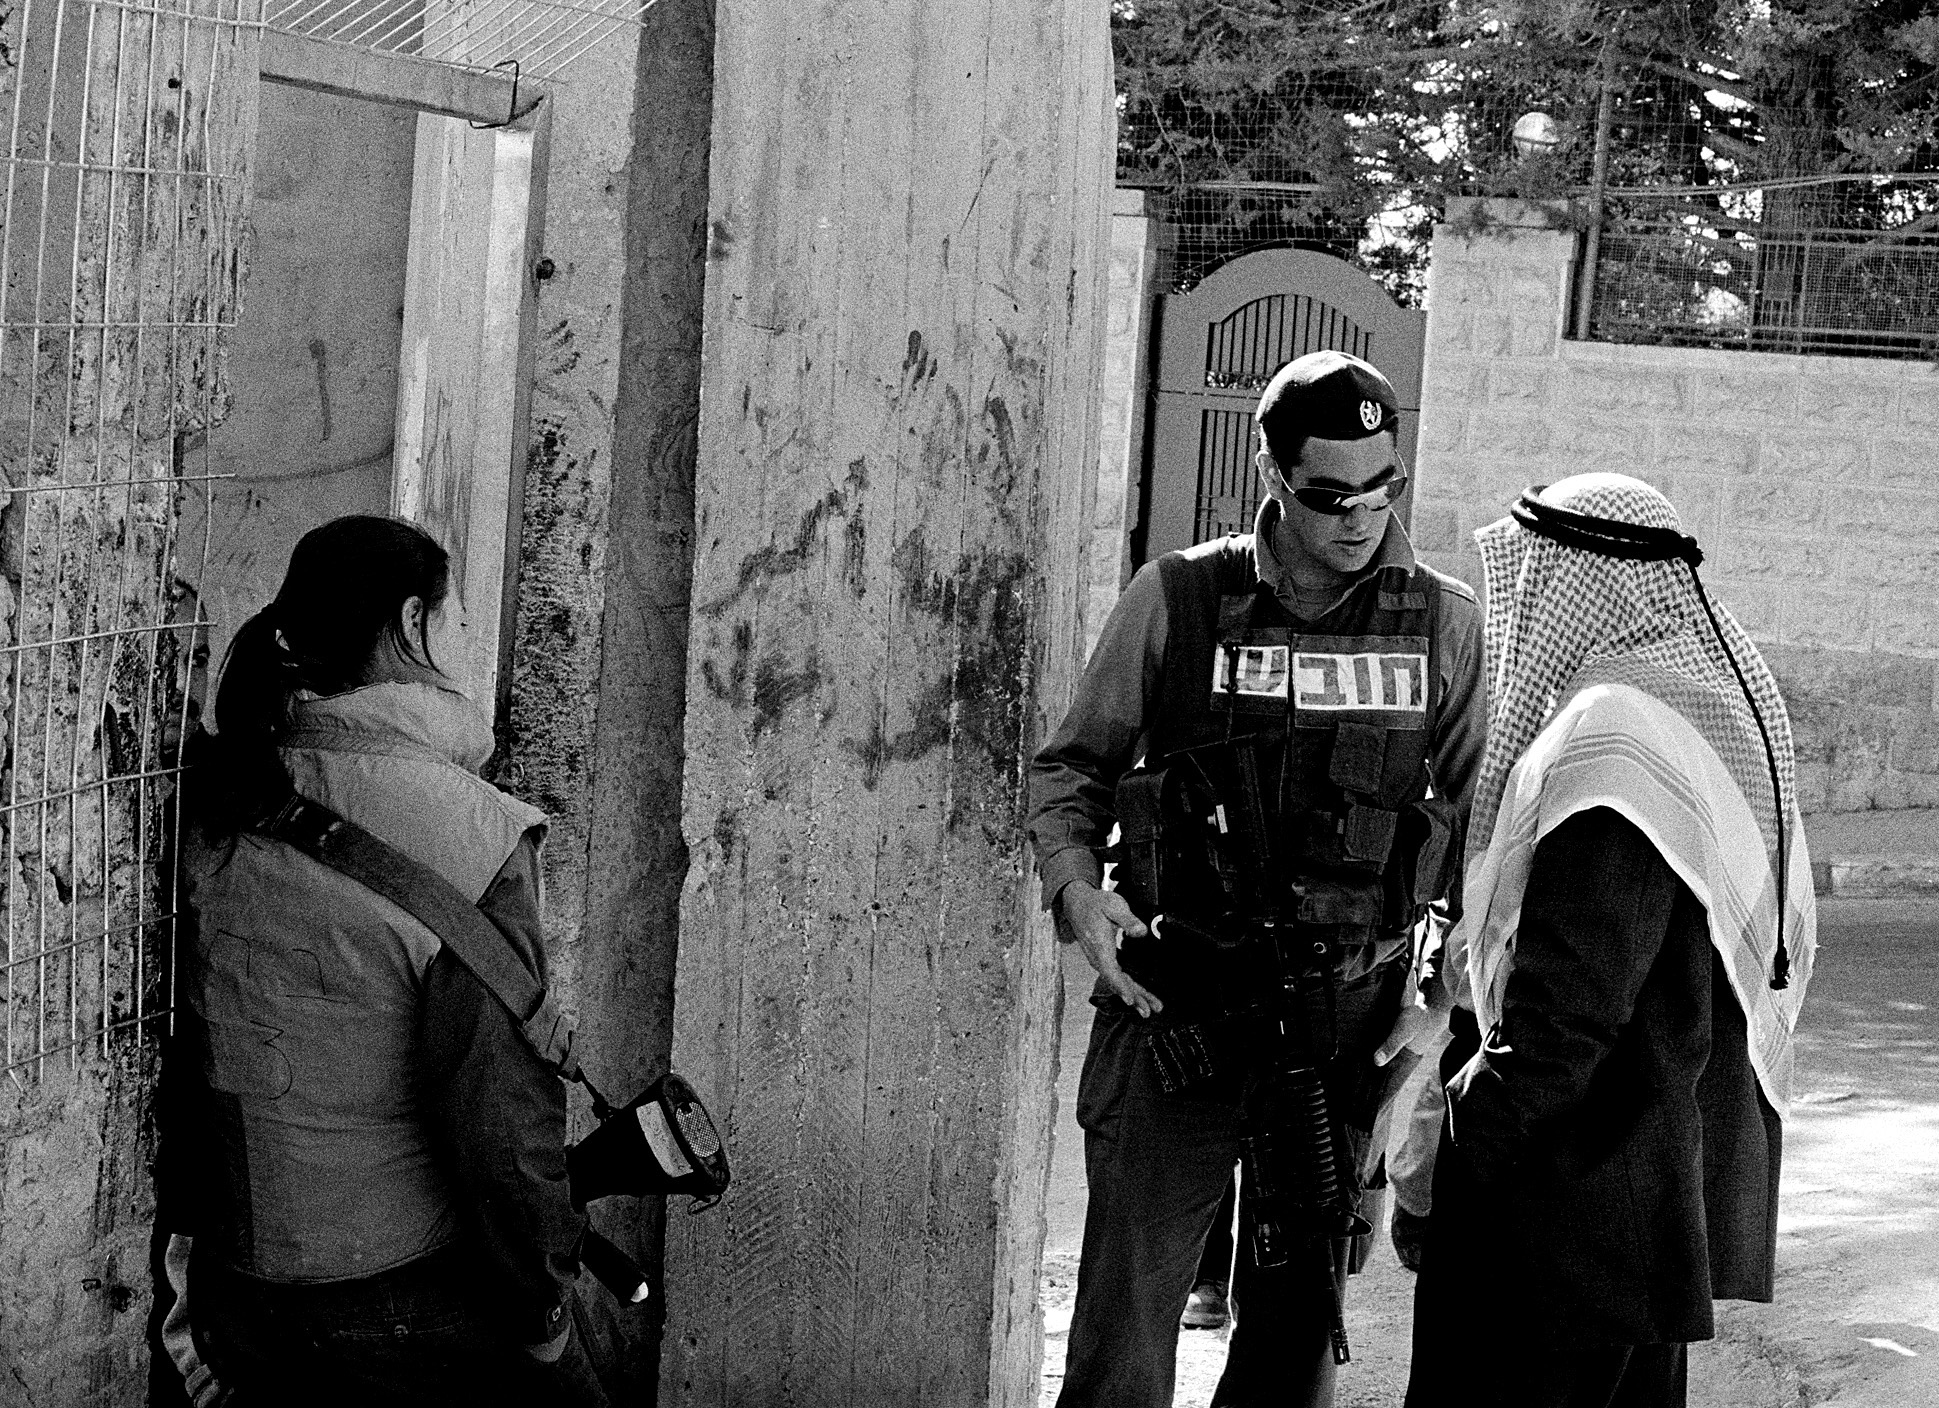 A young male soldier speaks with an arab man while a female soldier leans on a wall